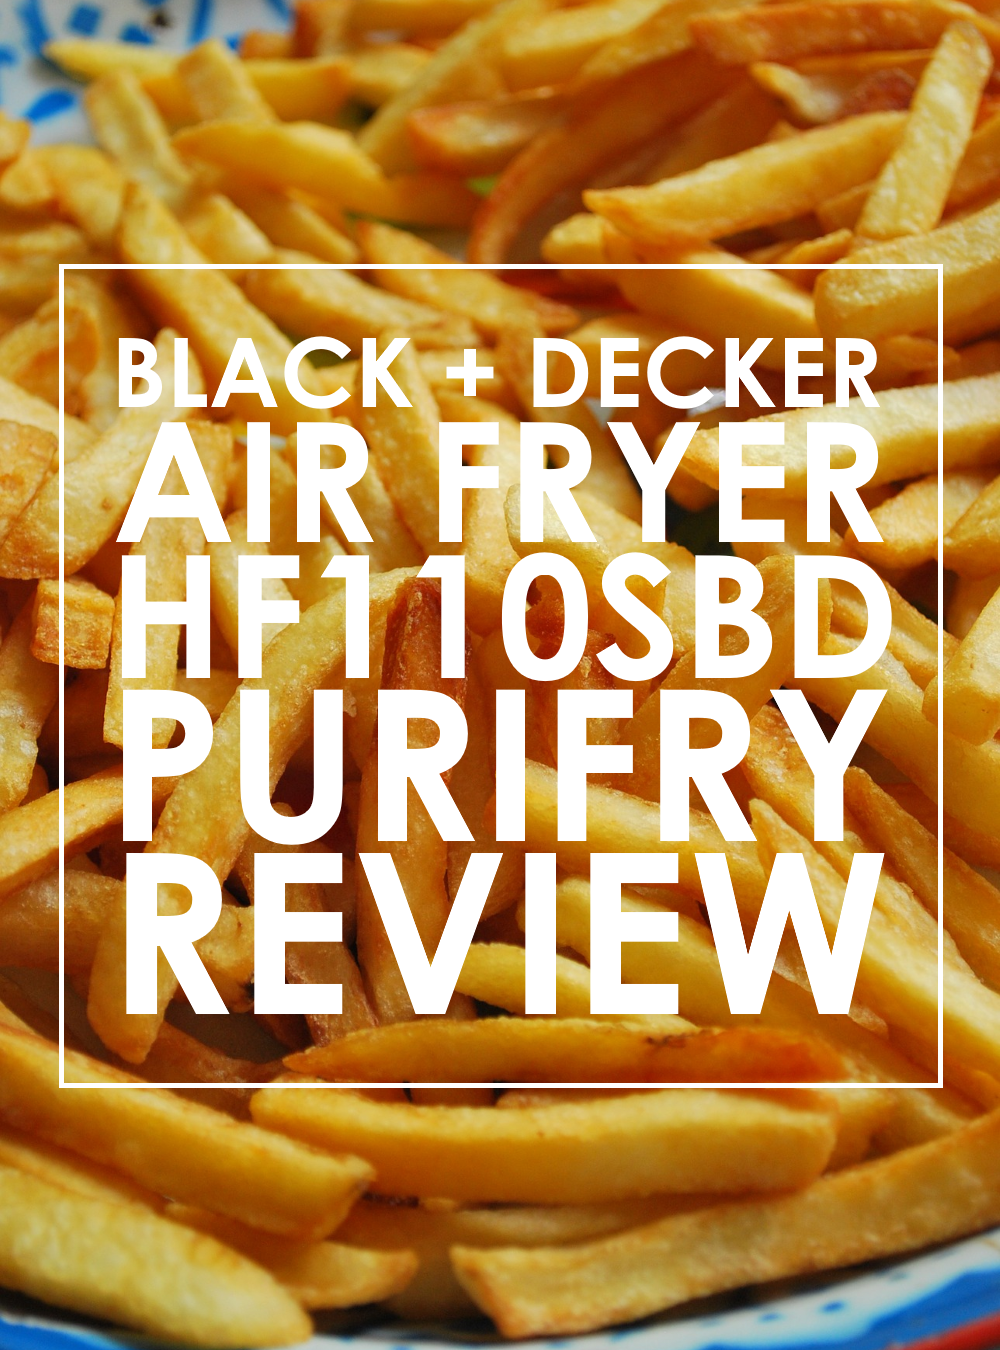 Black and Decker Air Fryer HF110SBD Purifry Review